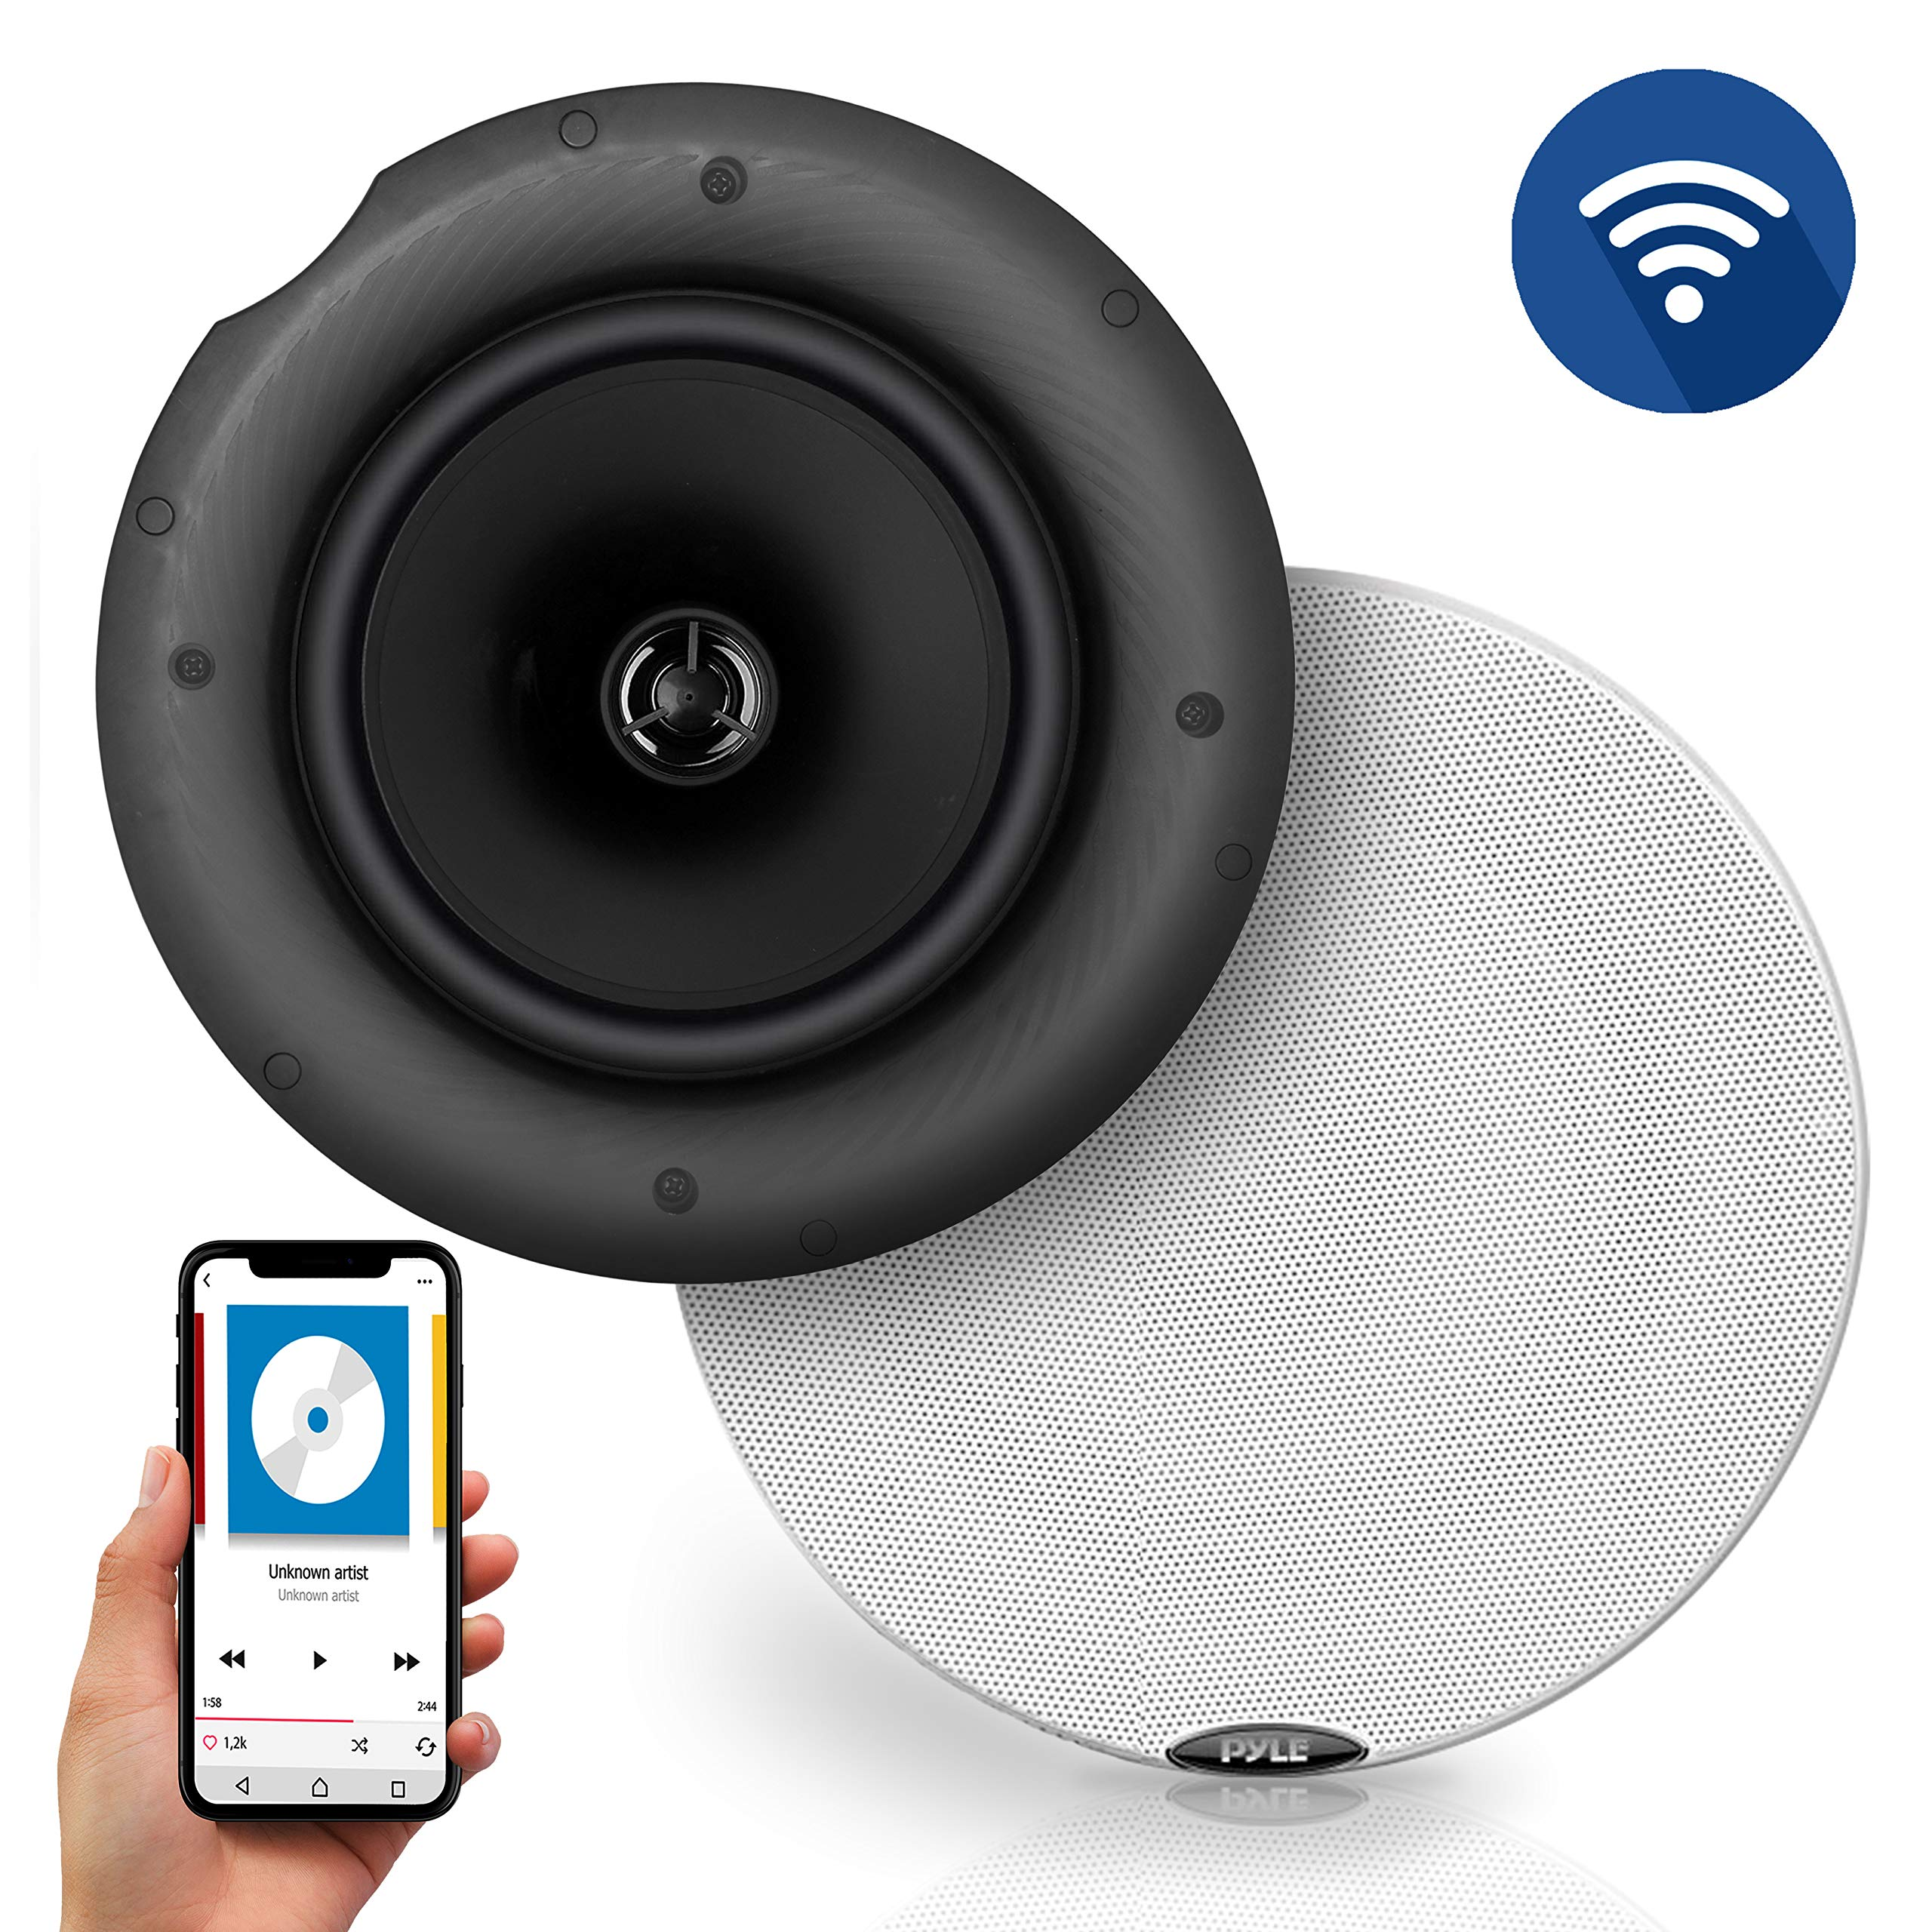 Pyle Pair 6.5'' Bluetooth Universal Flush Mount in-Wall in-Ceiling 2-Way Speaker System Dual Polypropylene Cone & Polymer Tweeter Stereo Sound 300 Watts (PDICBT67)